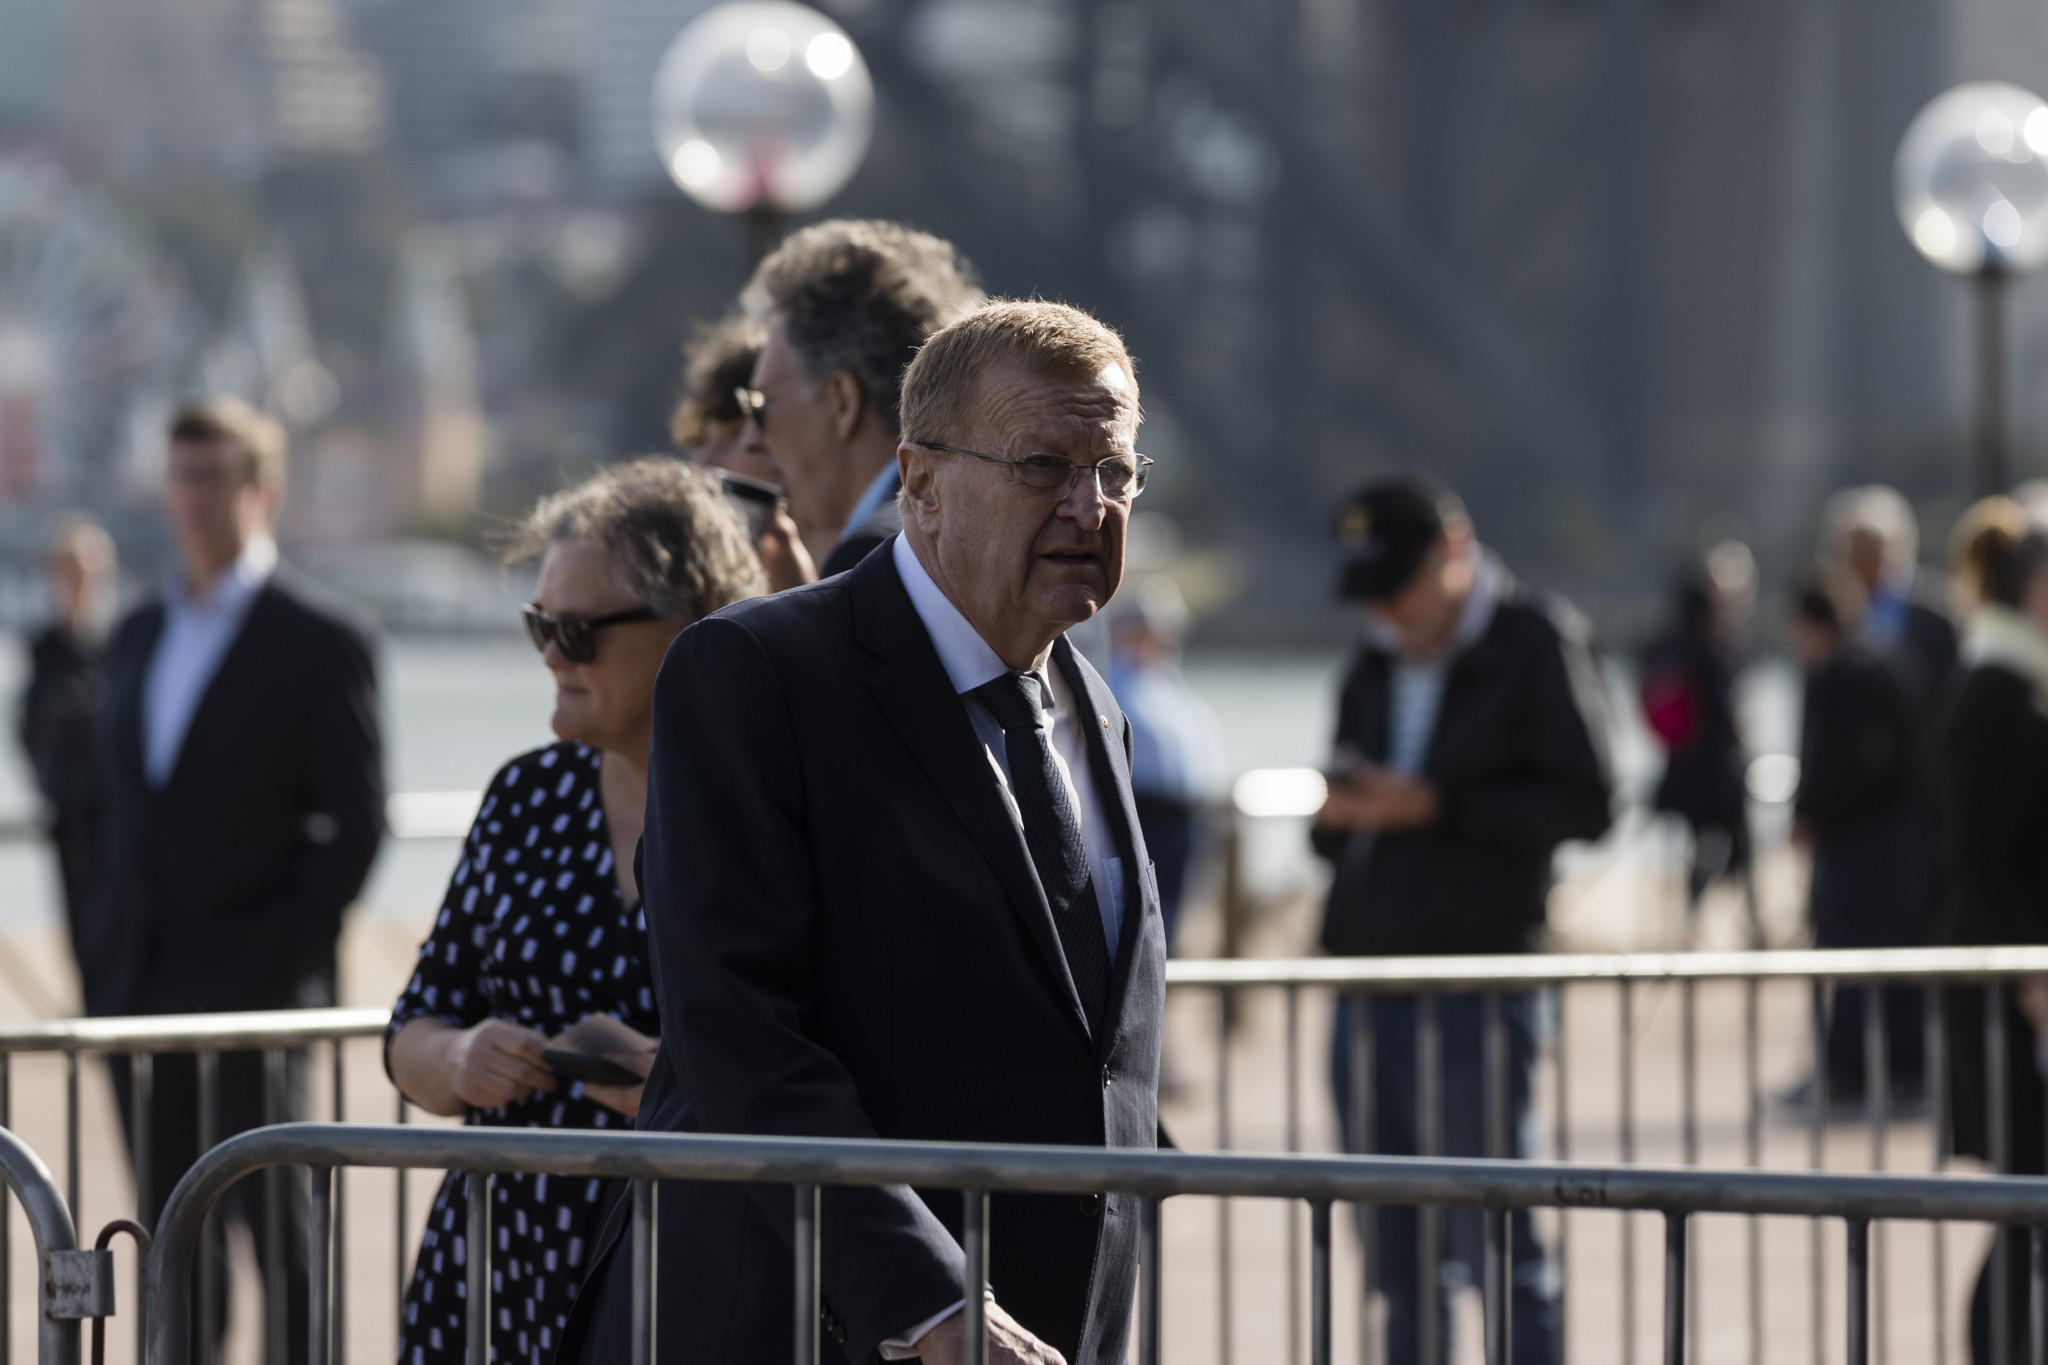 John Coates said Cities interested in bidding for future editions of the Olympic Games will be asked to hold a referendum before they can be considered as a candidate ©Getty Images